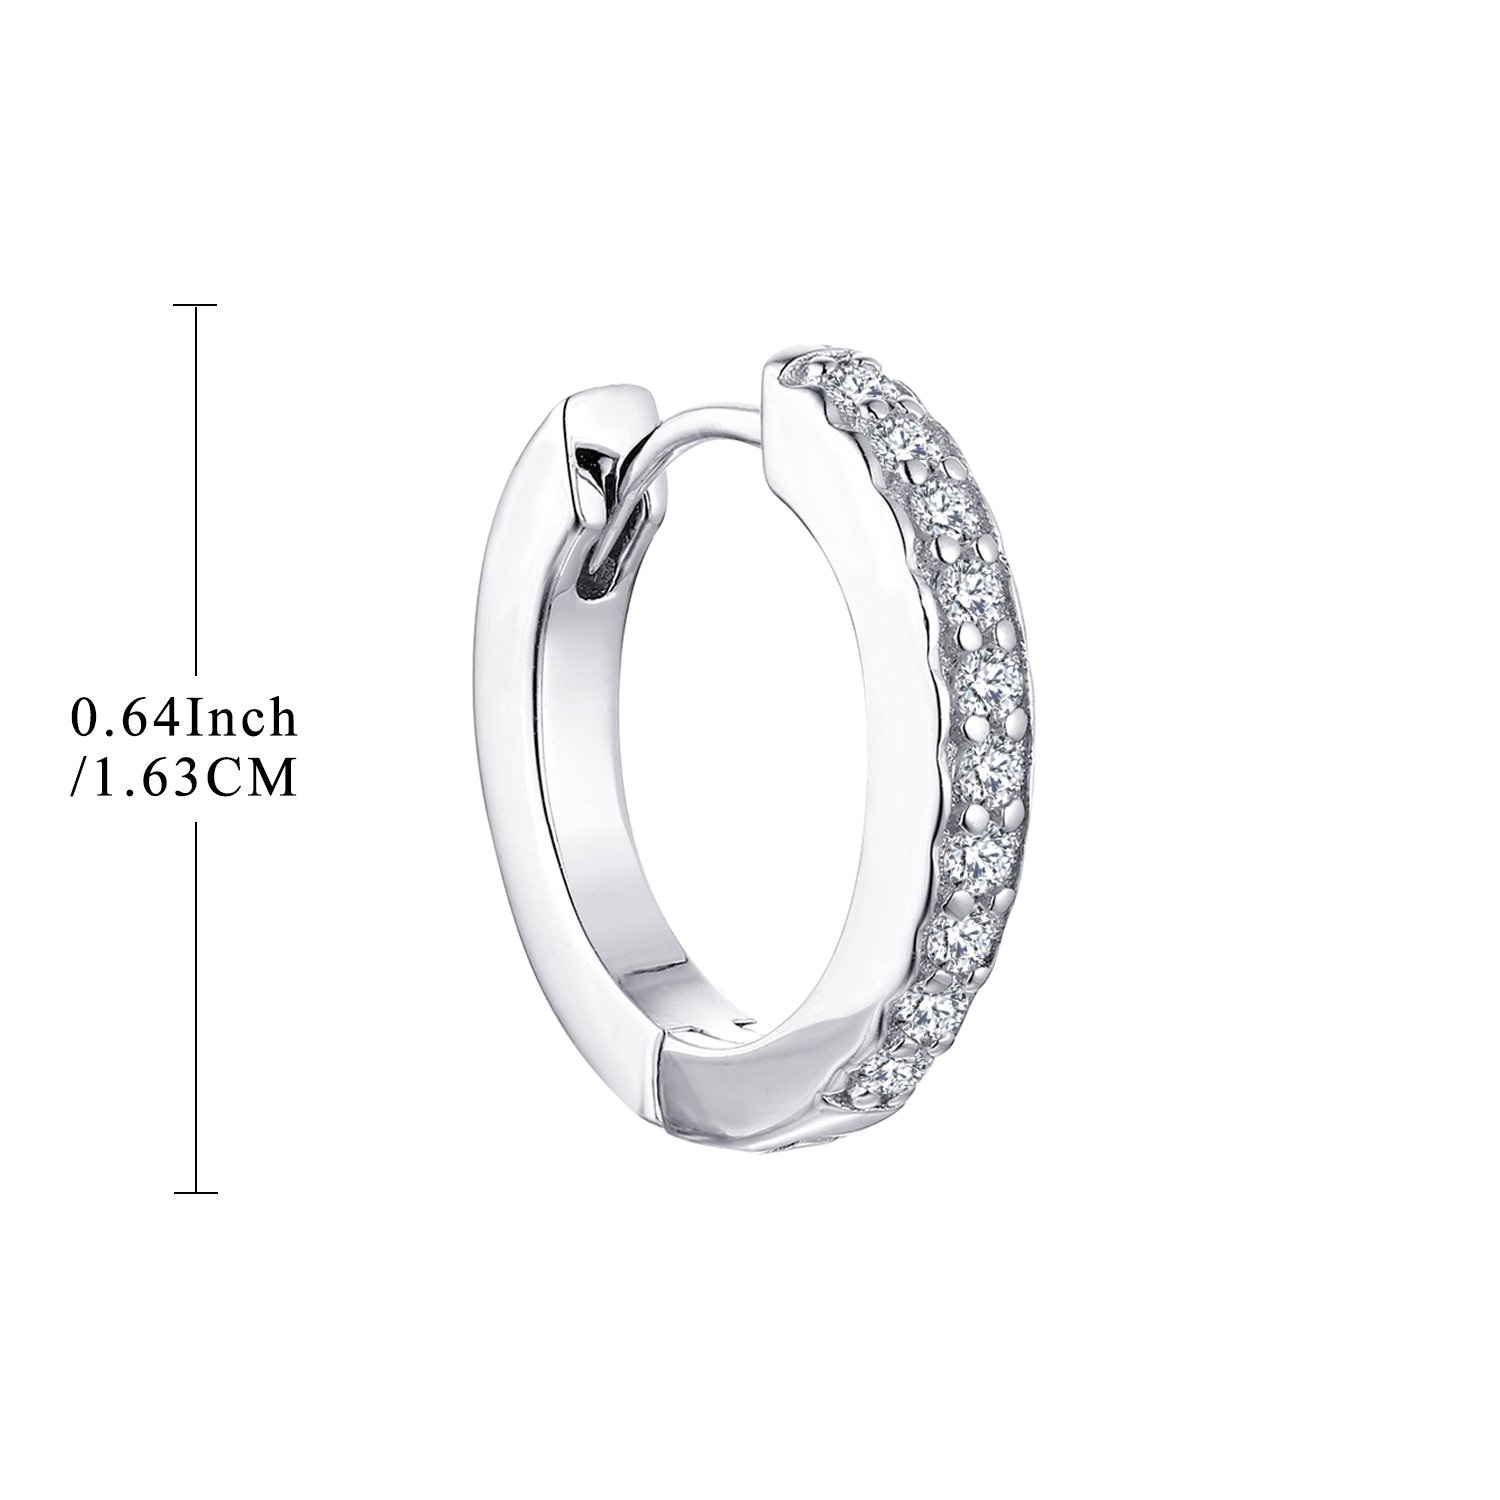 0.28 Cttw, H-I Color SI Clarity YL 14K White Gold Diamond Hoop Earrings